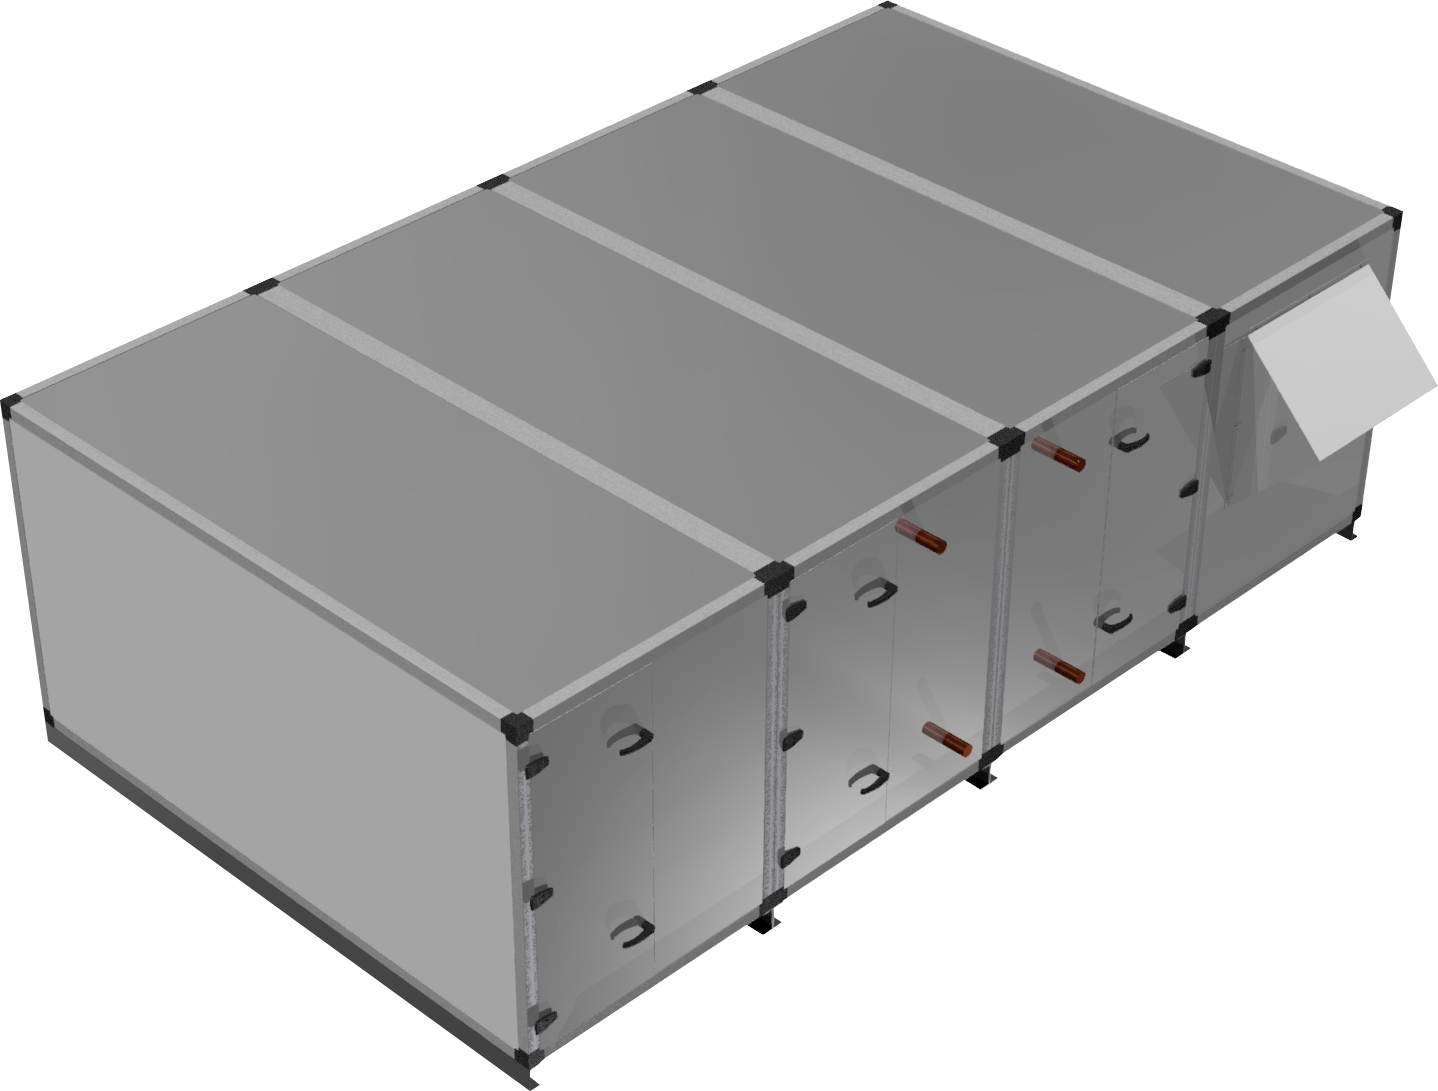 Custom Air Handling Units - Air handling unit 2